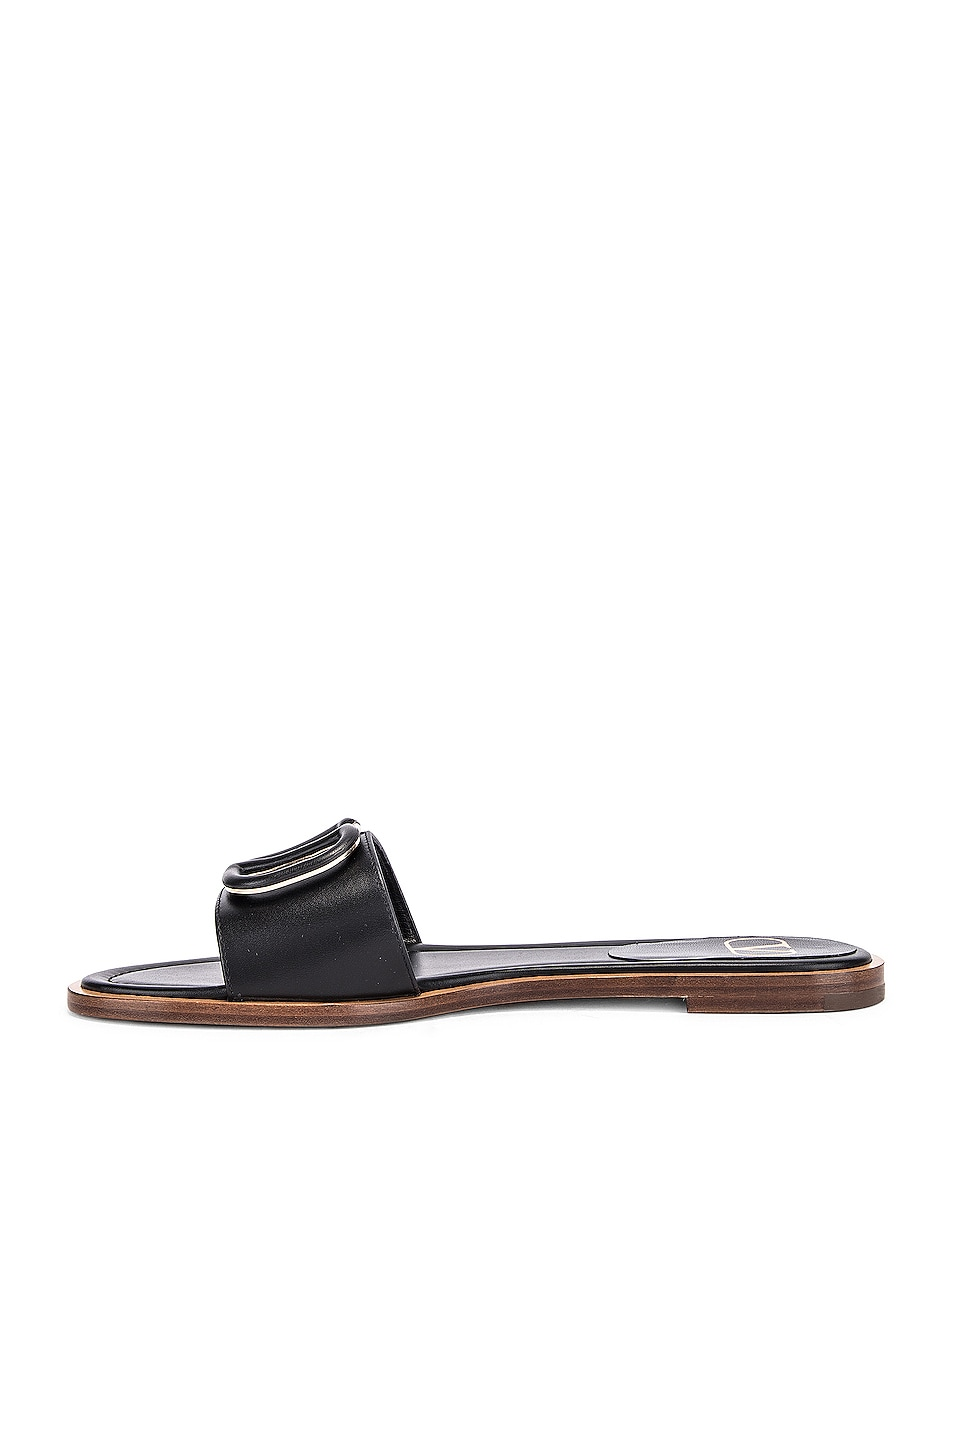 Image 5 of Valentino Vlogo Slides in Black